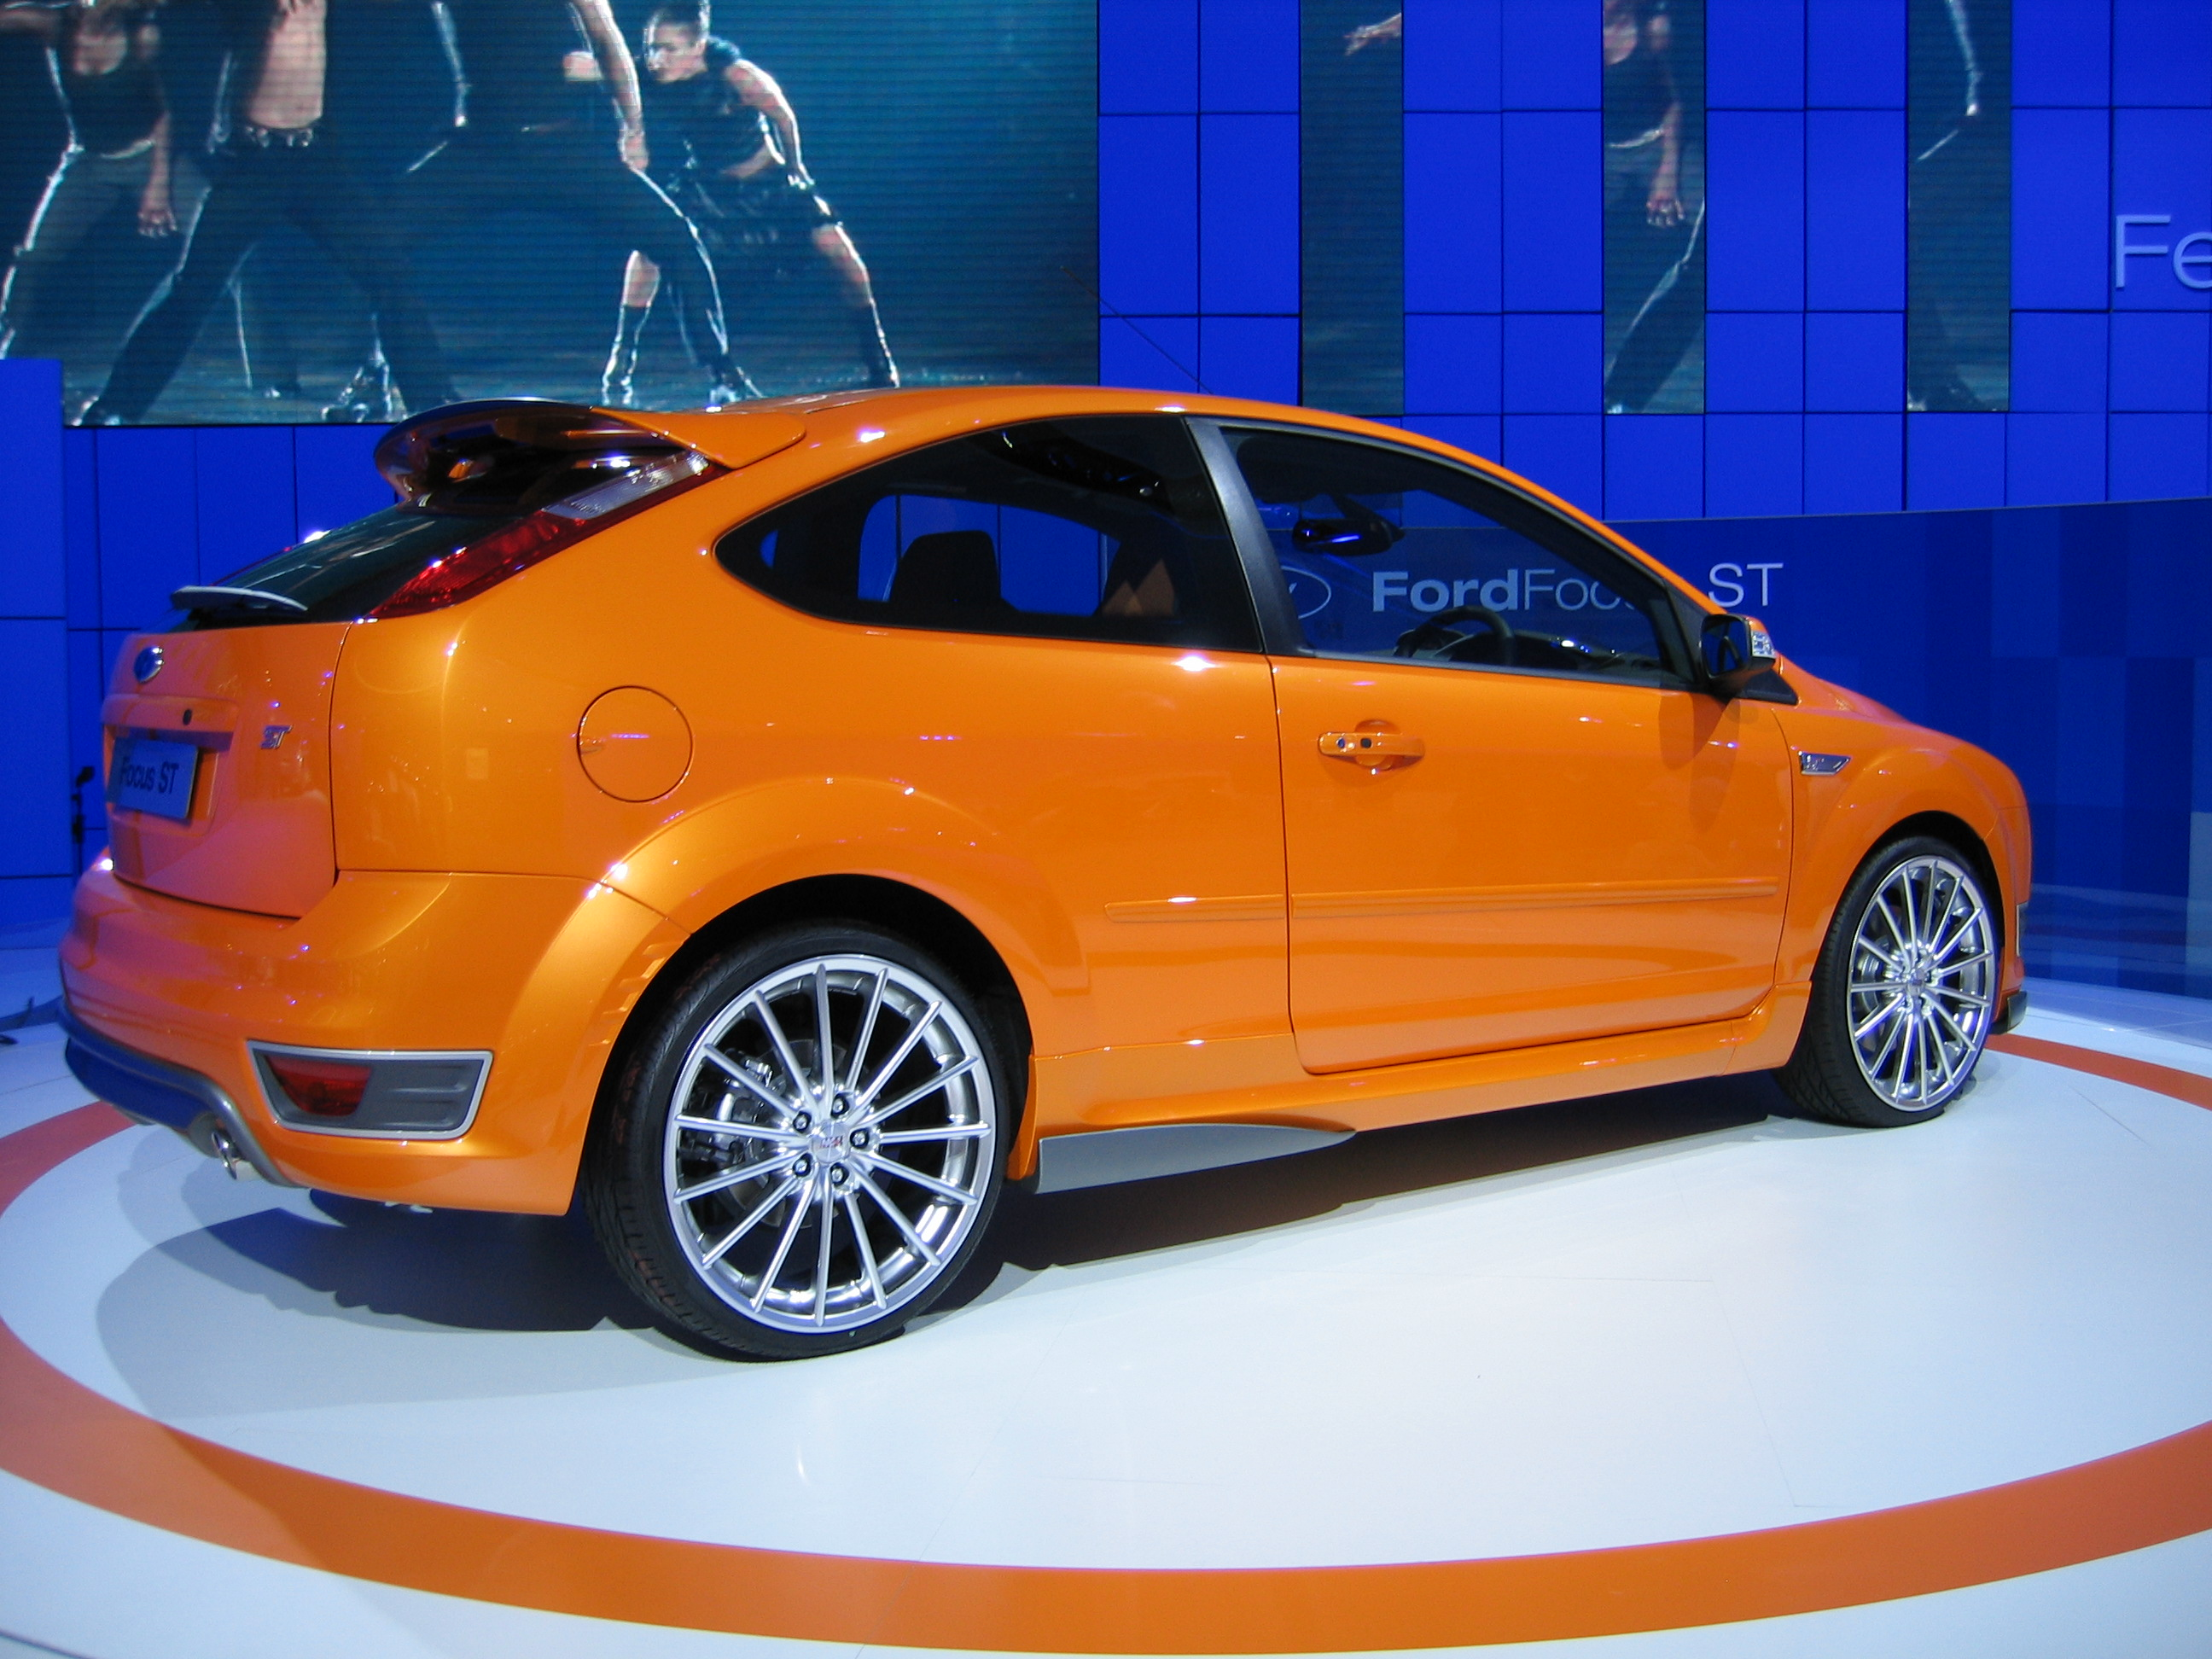 file ford focus st flickr wikimedia commons. Black Bedroom Furniture Sets. Home Design Ideas